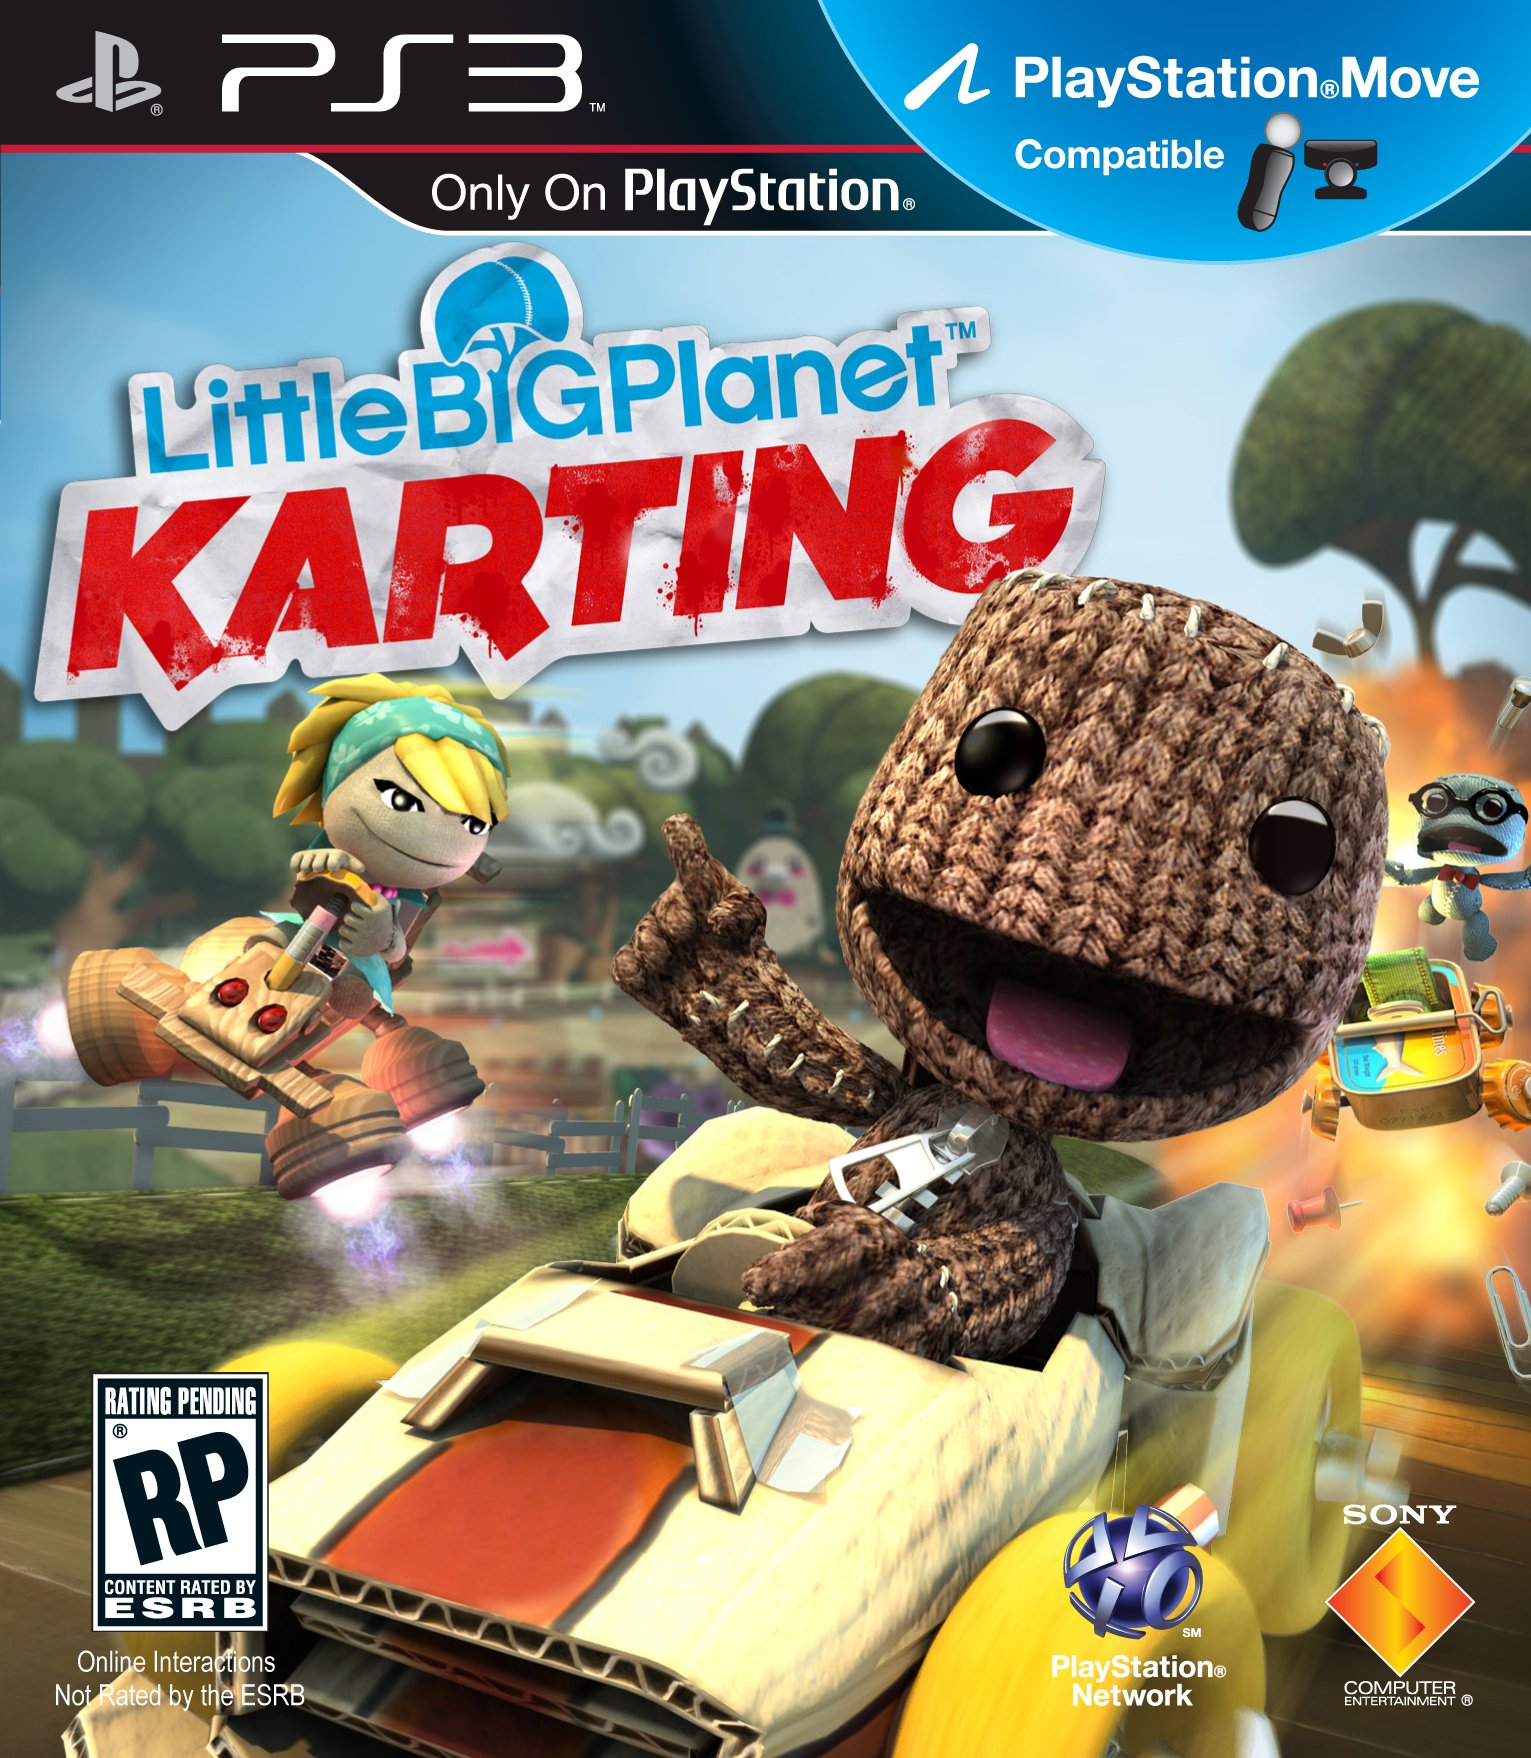 Little big planet usernames for dating